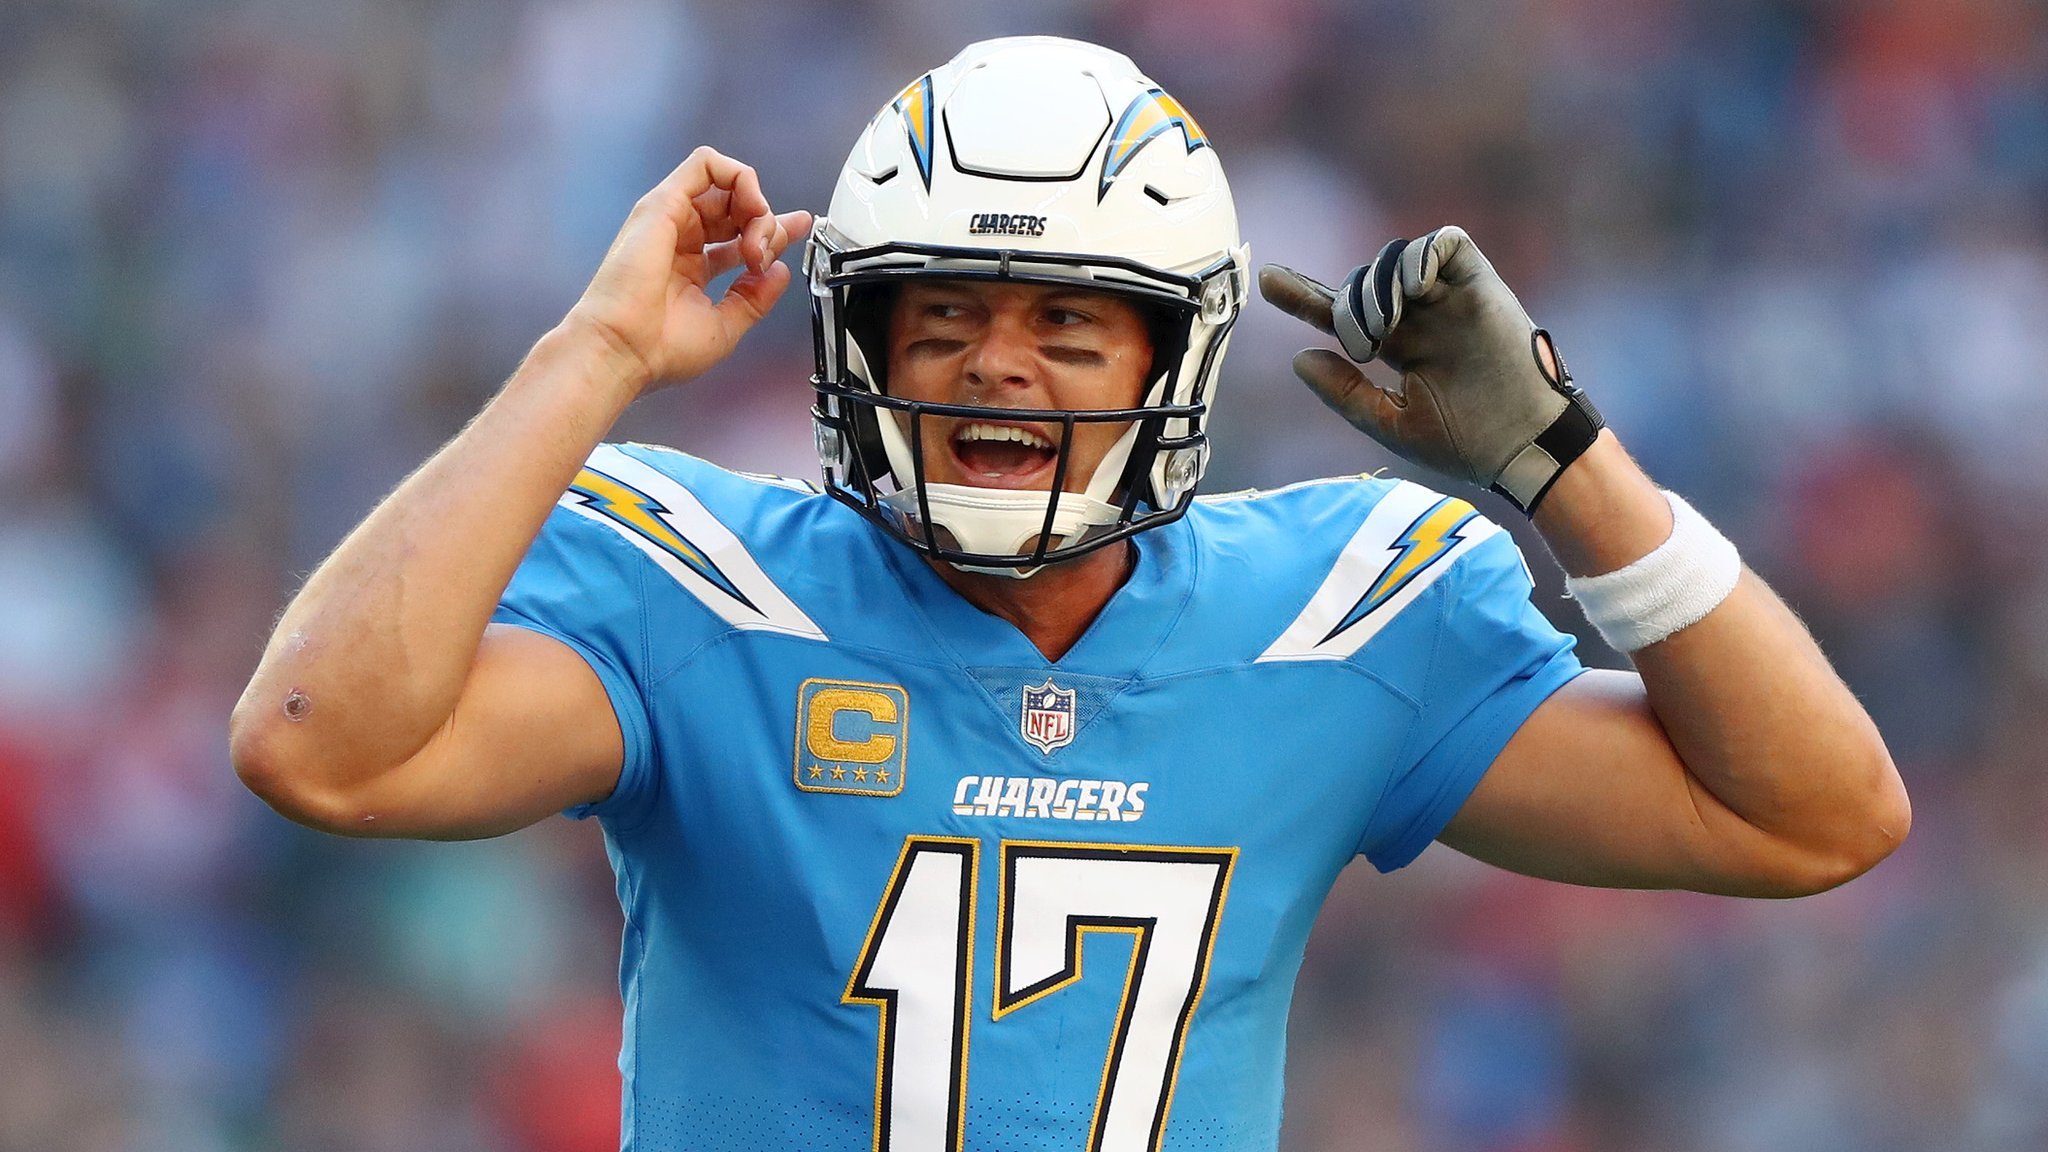 NFL: Los Angeles Chargers hold on to beat Tennessee Titans in Wembley thriller